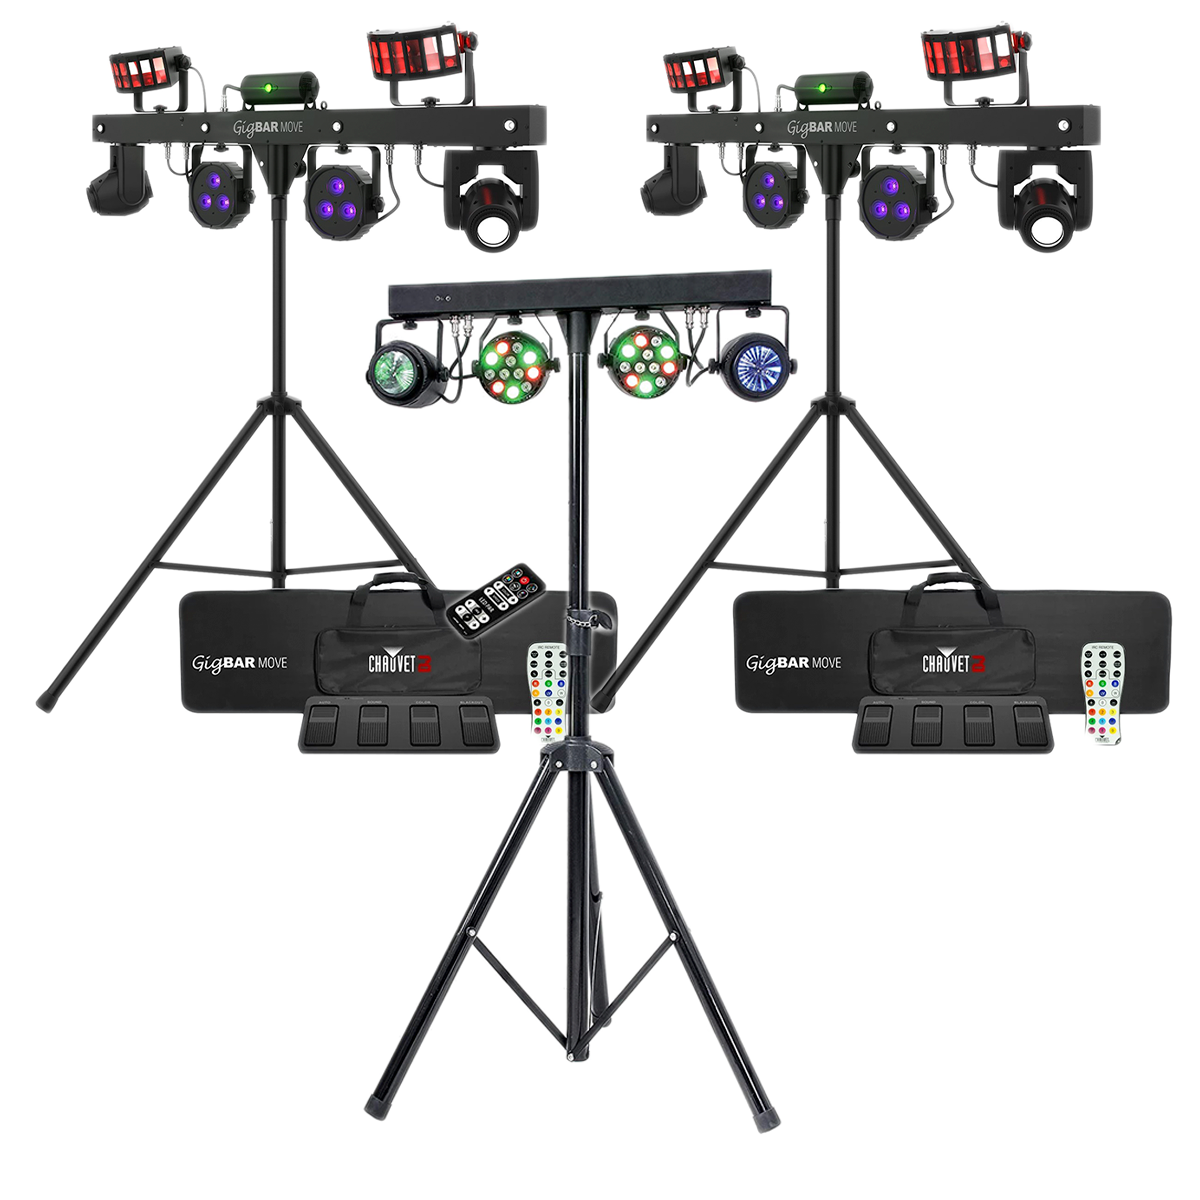 3-CHAUVET-DJ-GigBAR-Move-5-in-1-Lighting-System-2-MUSYSIC-MU-L31F-Complete-Professional-4-Par-4-in-1-1599.98.png